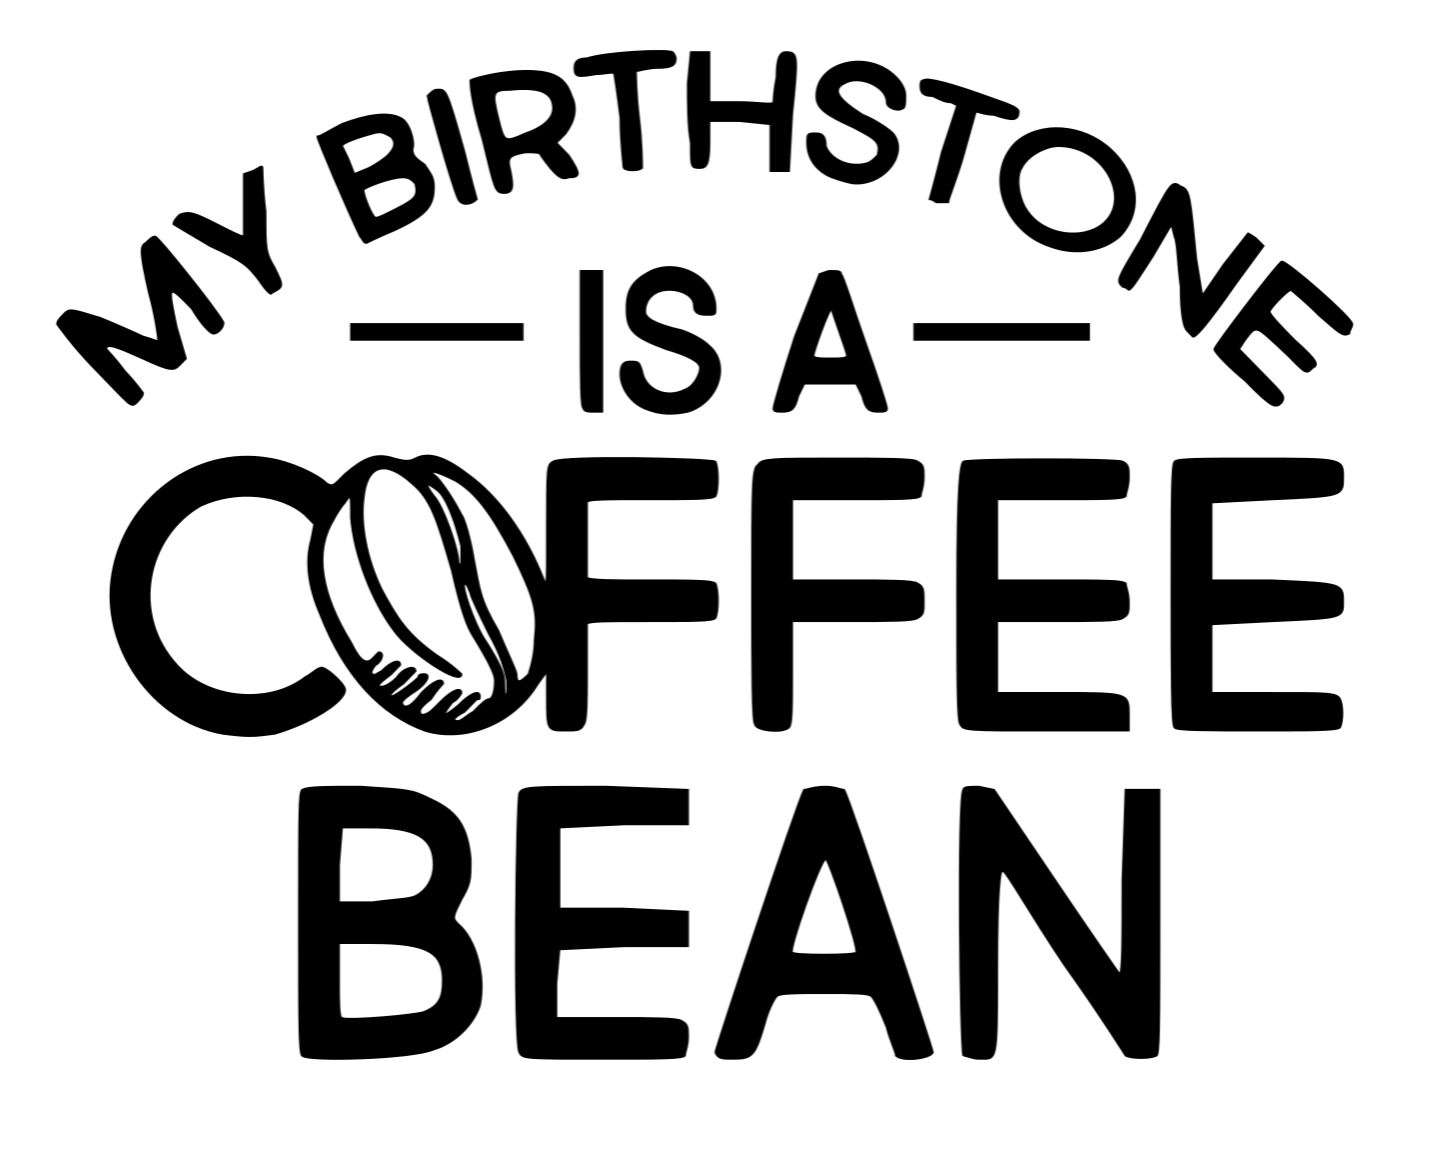 Coffee is my birthstone